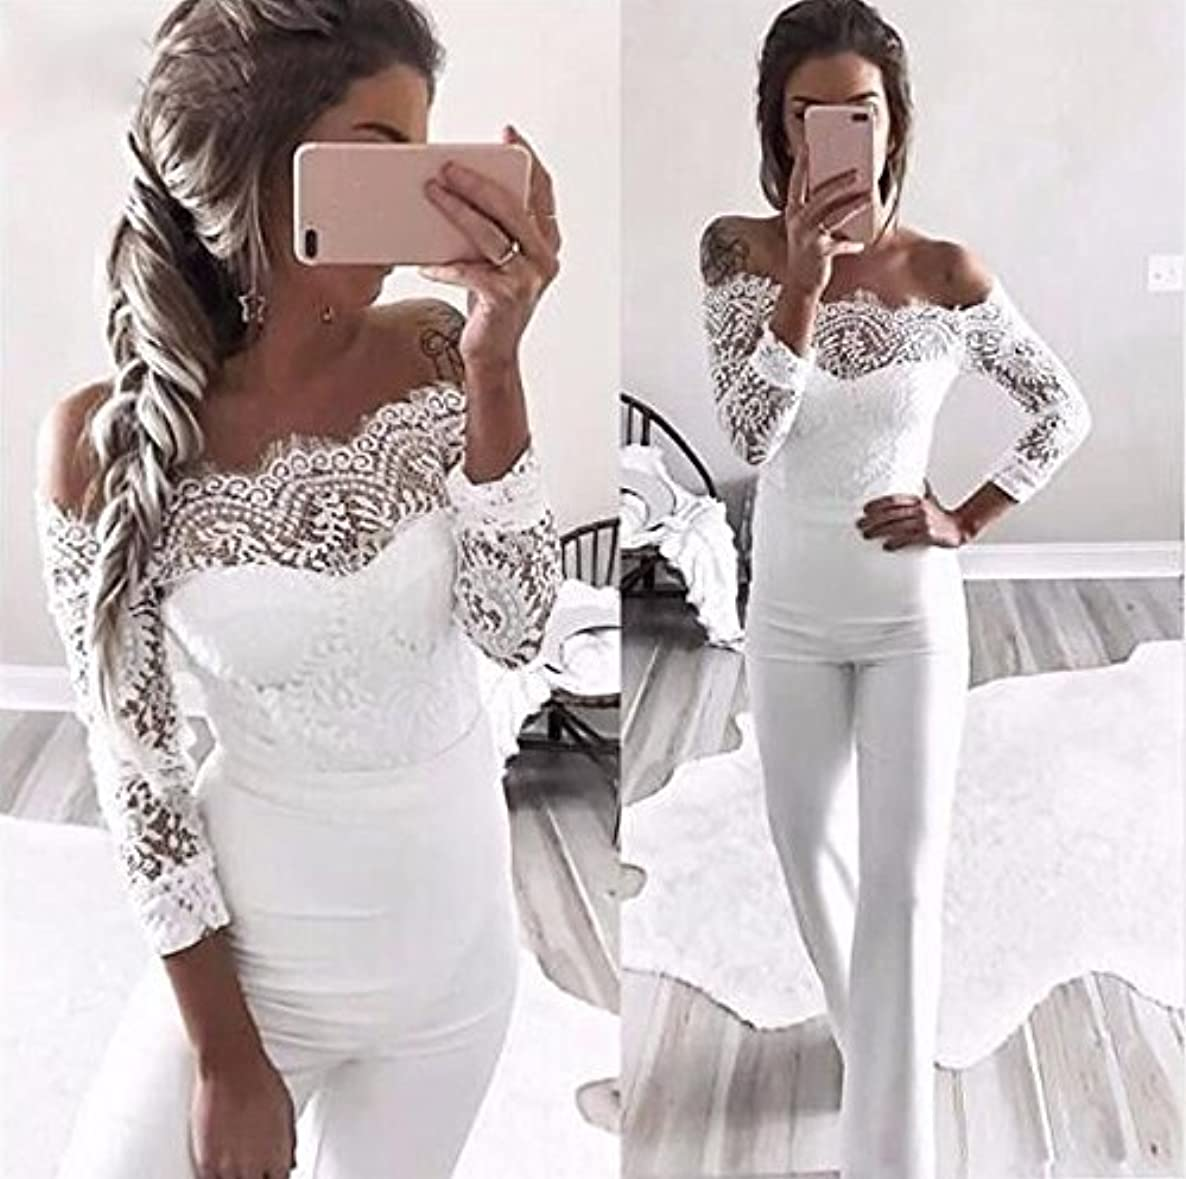 Women Jumpsuit Daoroka Sexy Lace Off Shoulder Long Sleeve Party Rompers Long Pants Casual Playsuit (XL, White)